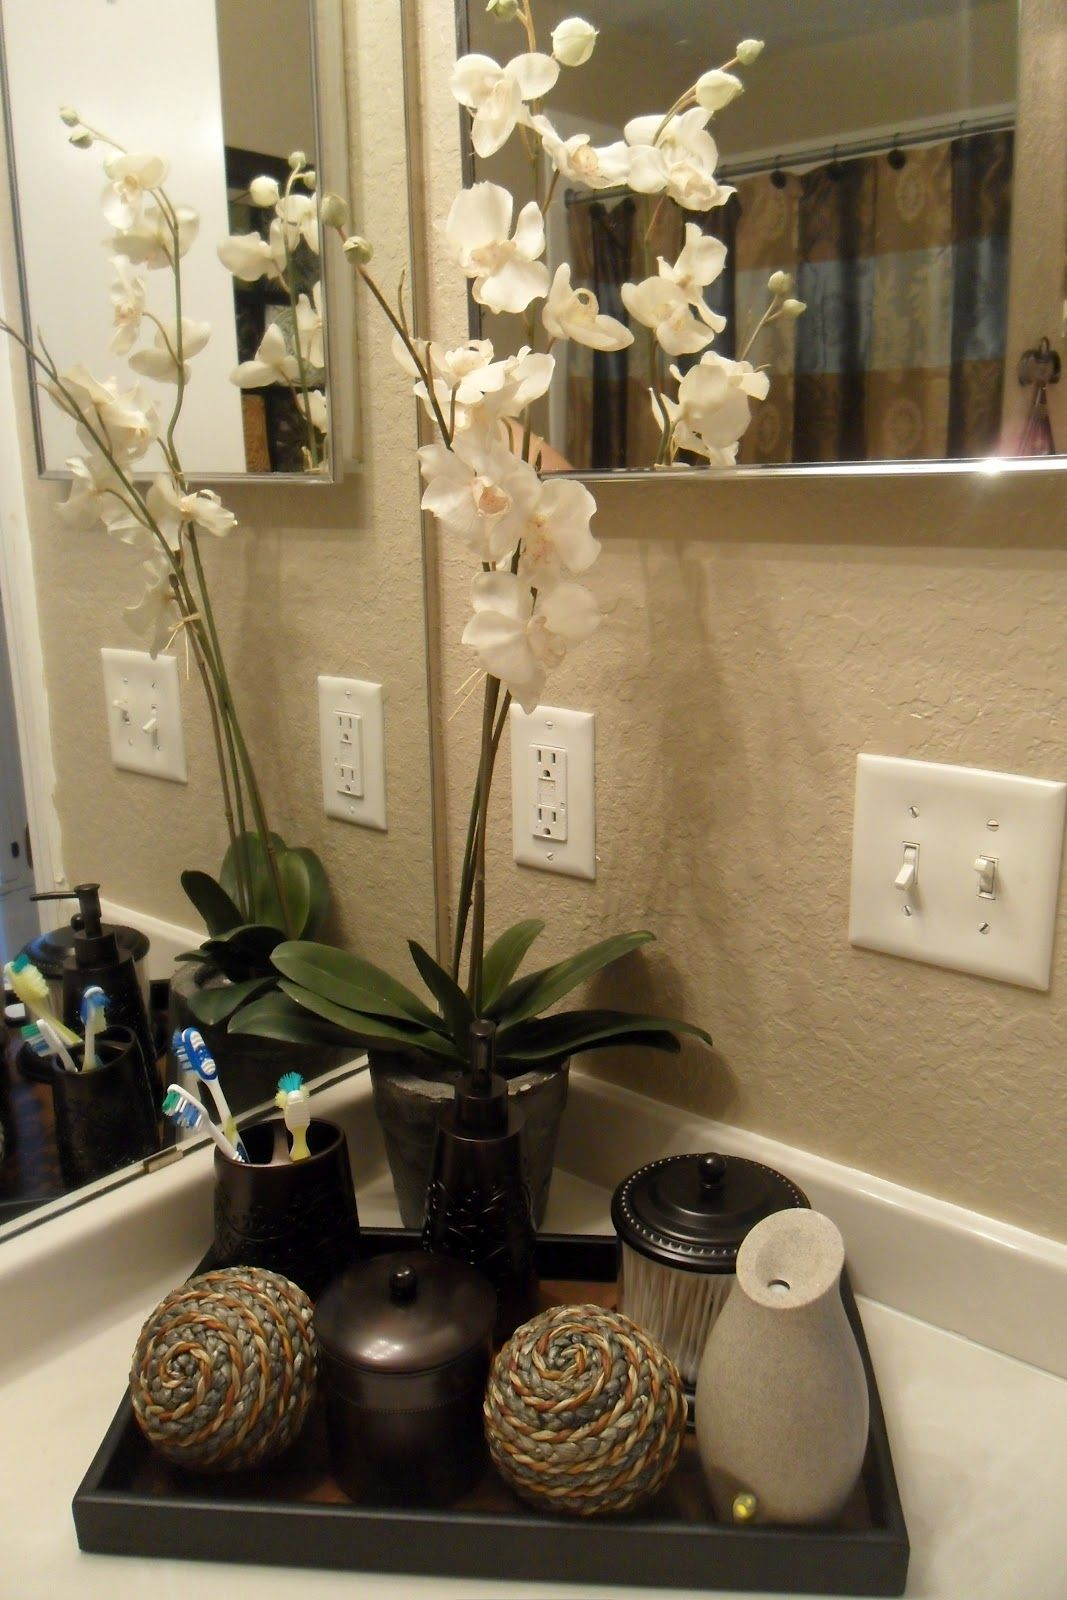 Ross Bathroom Decor | Bathroom Counter Decor | Organizations ... on bathtub design, bathtub quotes, decorating ideas, bathtub remodel ideas, bathtub cake ideas, bathtub accessories ideas, bathtub candles ideas, bathtub wall decor, bathtub bedroom ideas, bathtub organization ideas, bathtub paint ideas, bathtub lighting ideas, bathtub bathroom ideas, bathtub wall ideas, bathtub gift ideas, bathtub flowers,